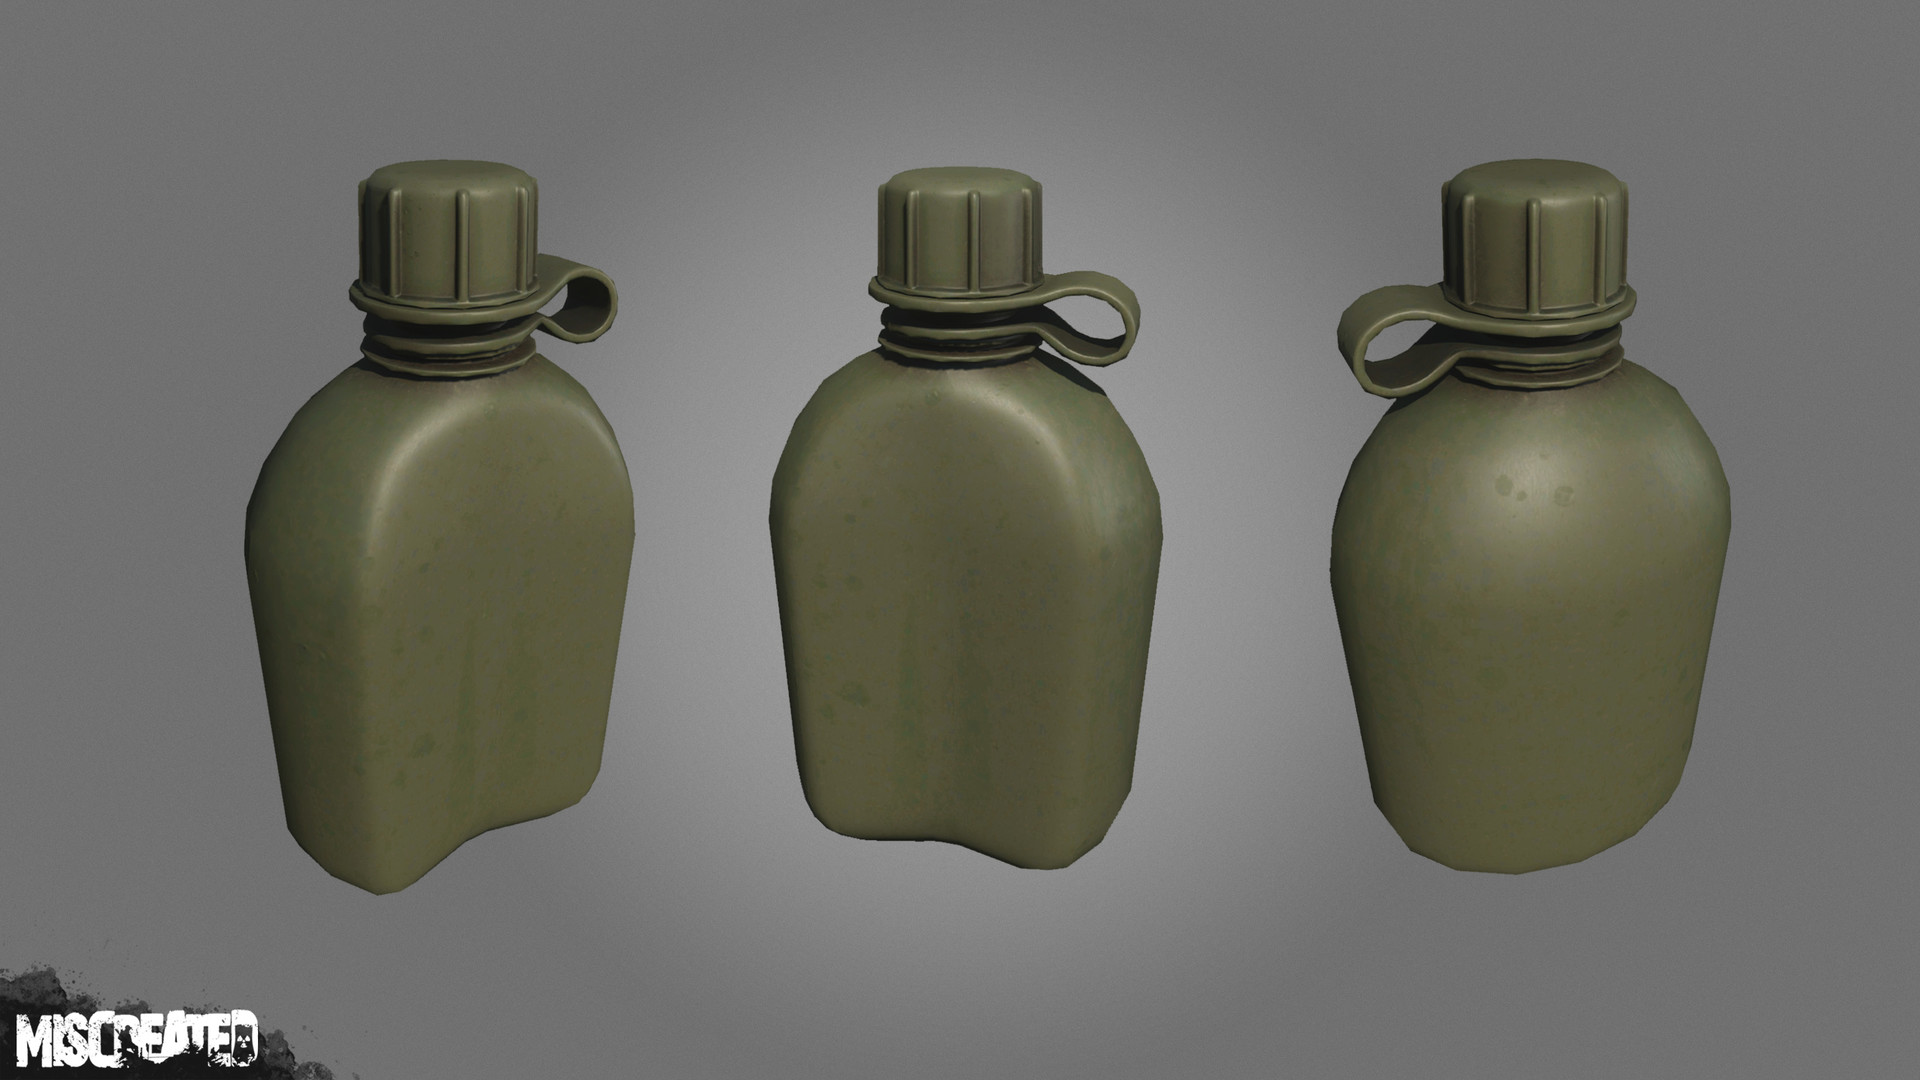 Military Canteen (Plastic), used for carrying water